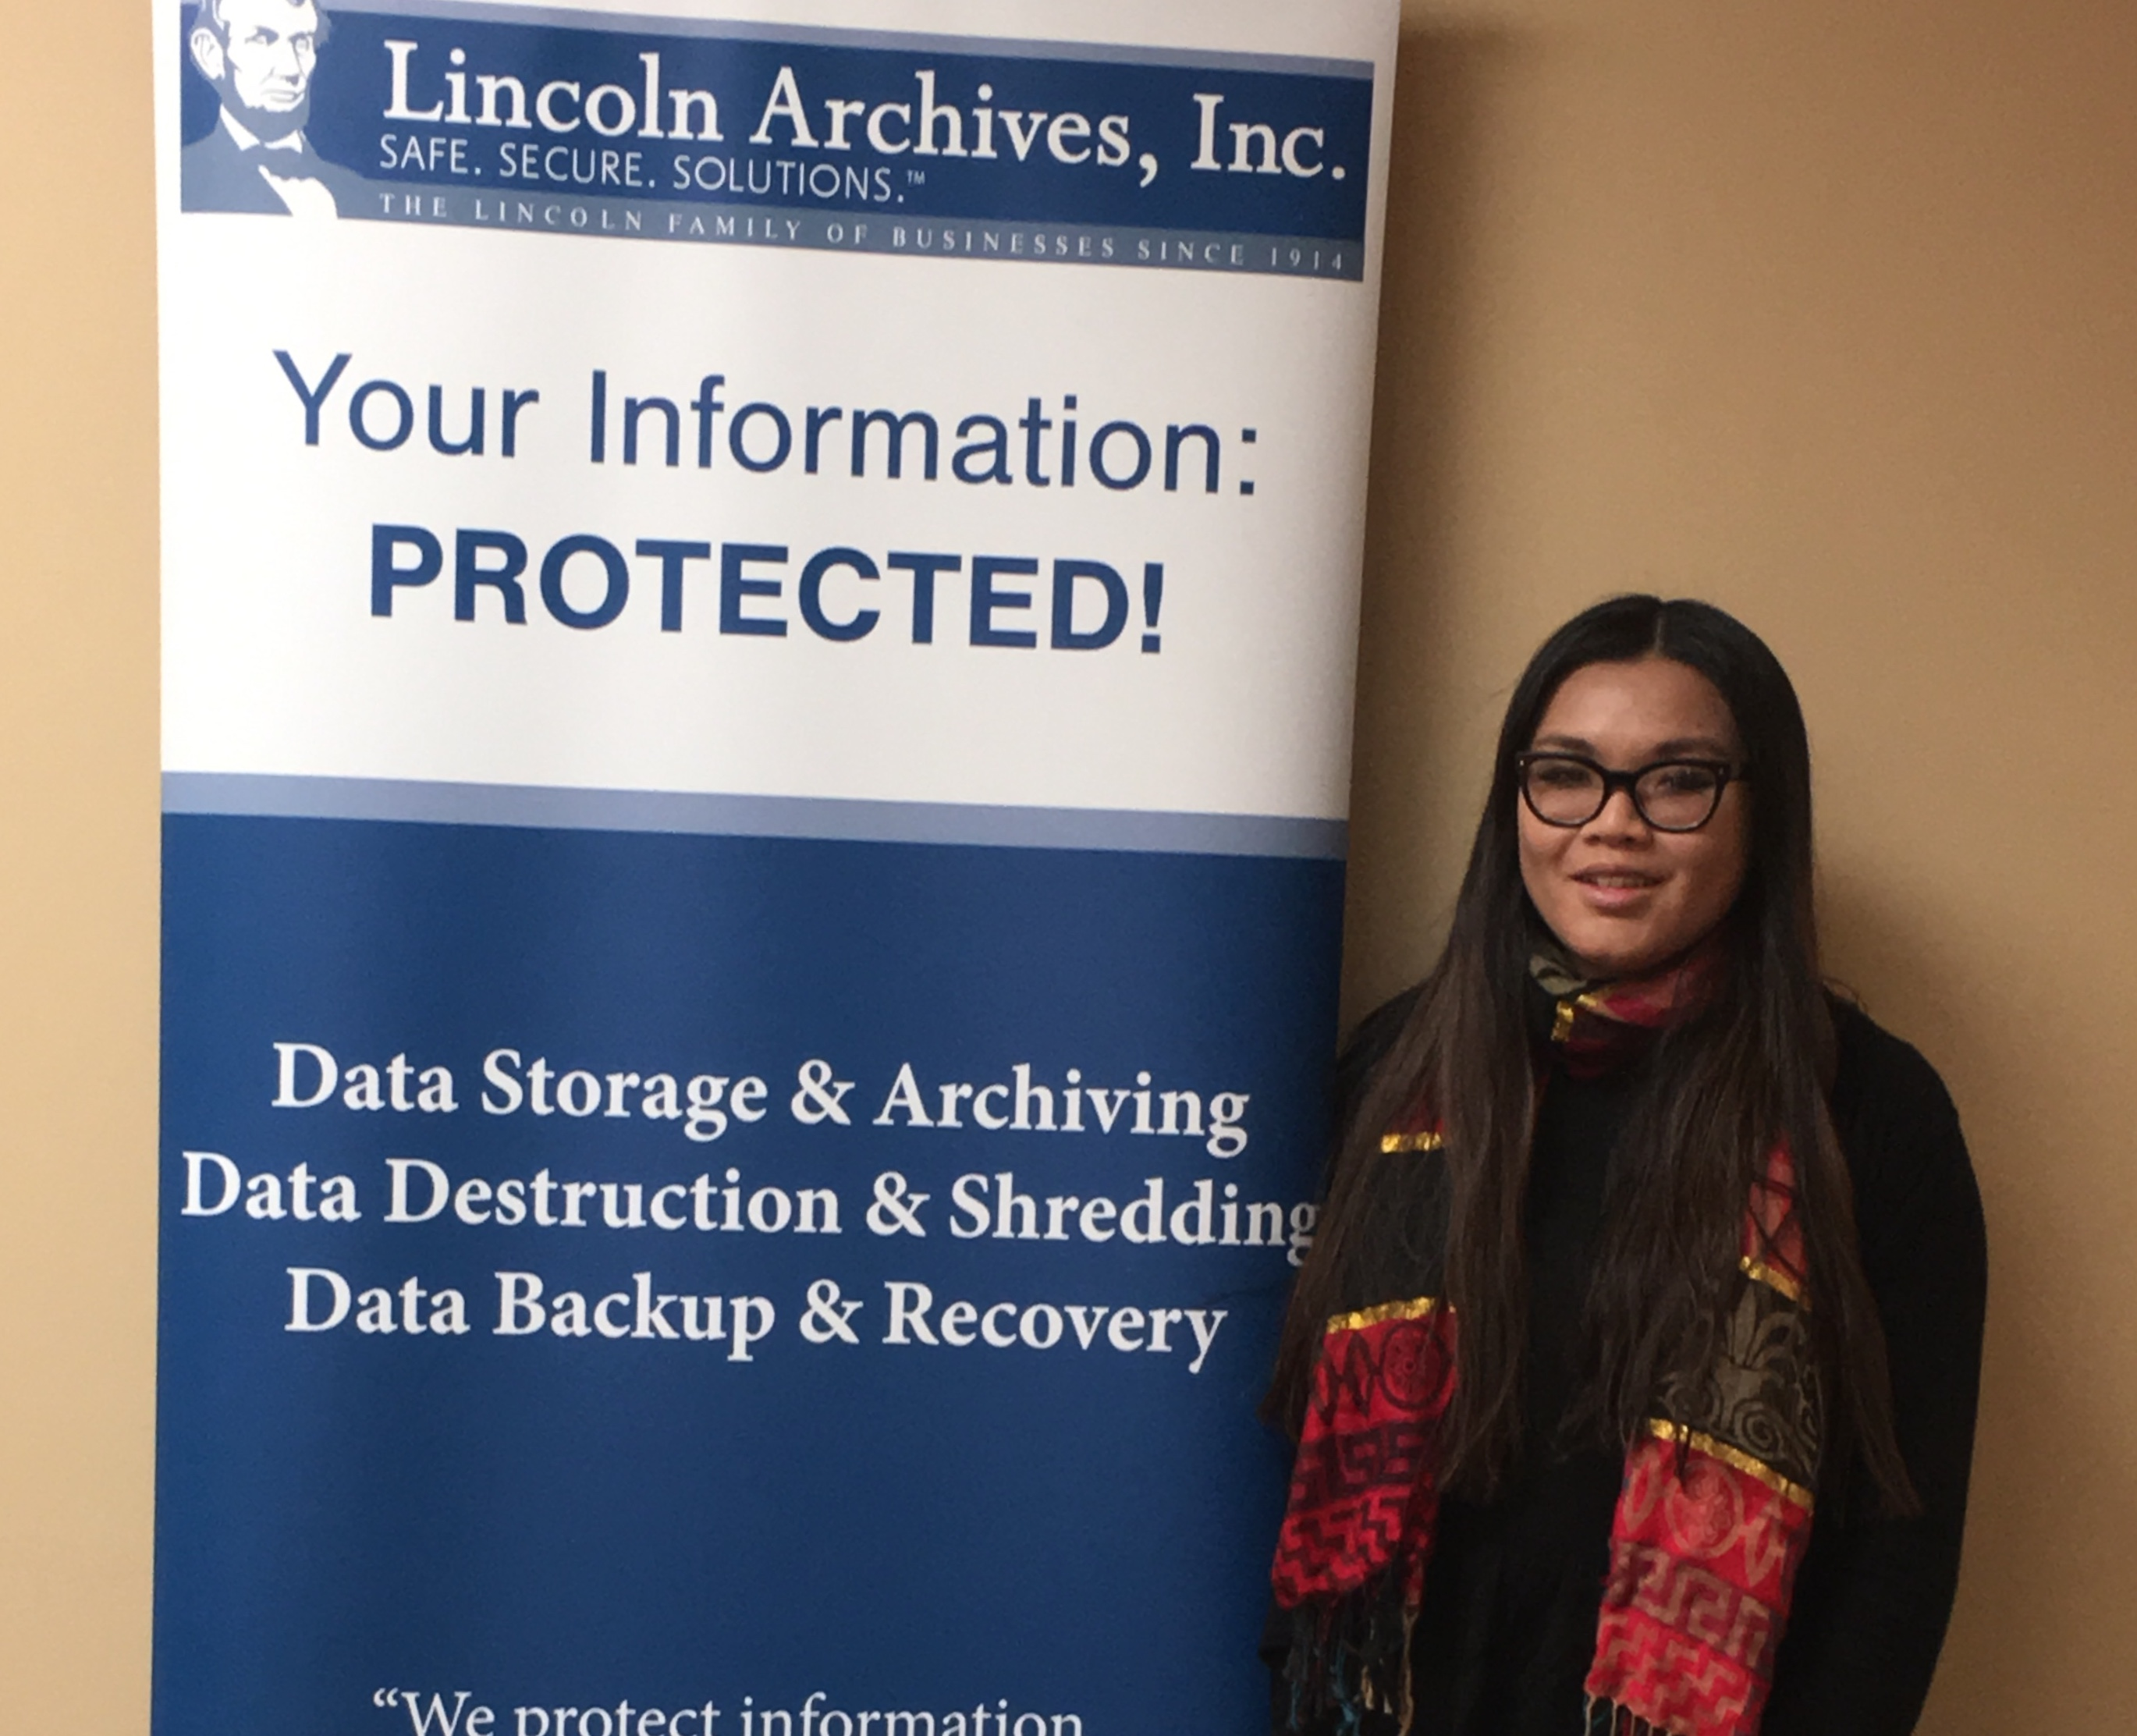 Lincoln Archives Adds a New Member to The Sales Team